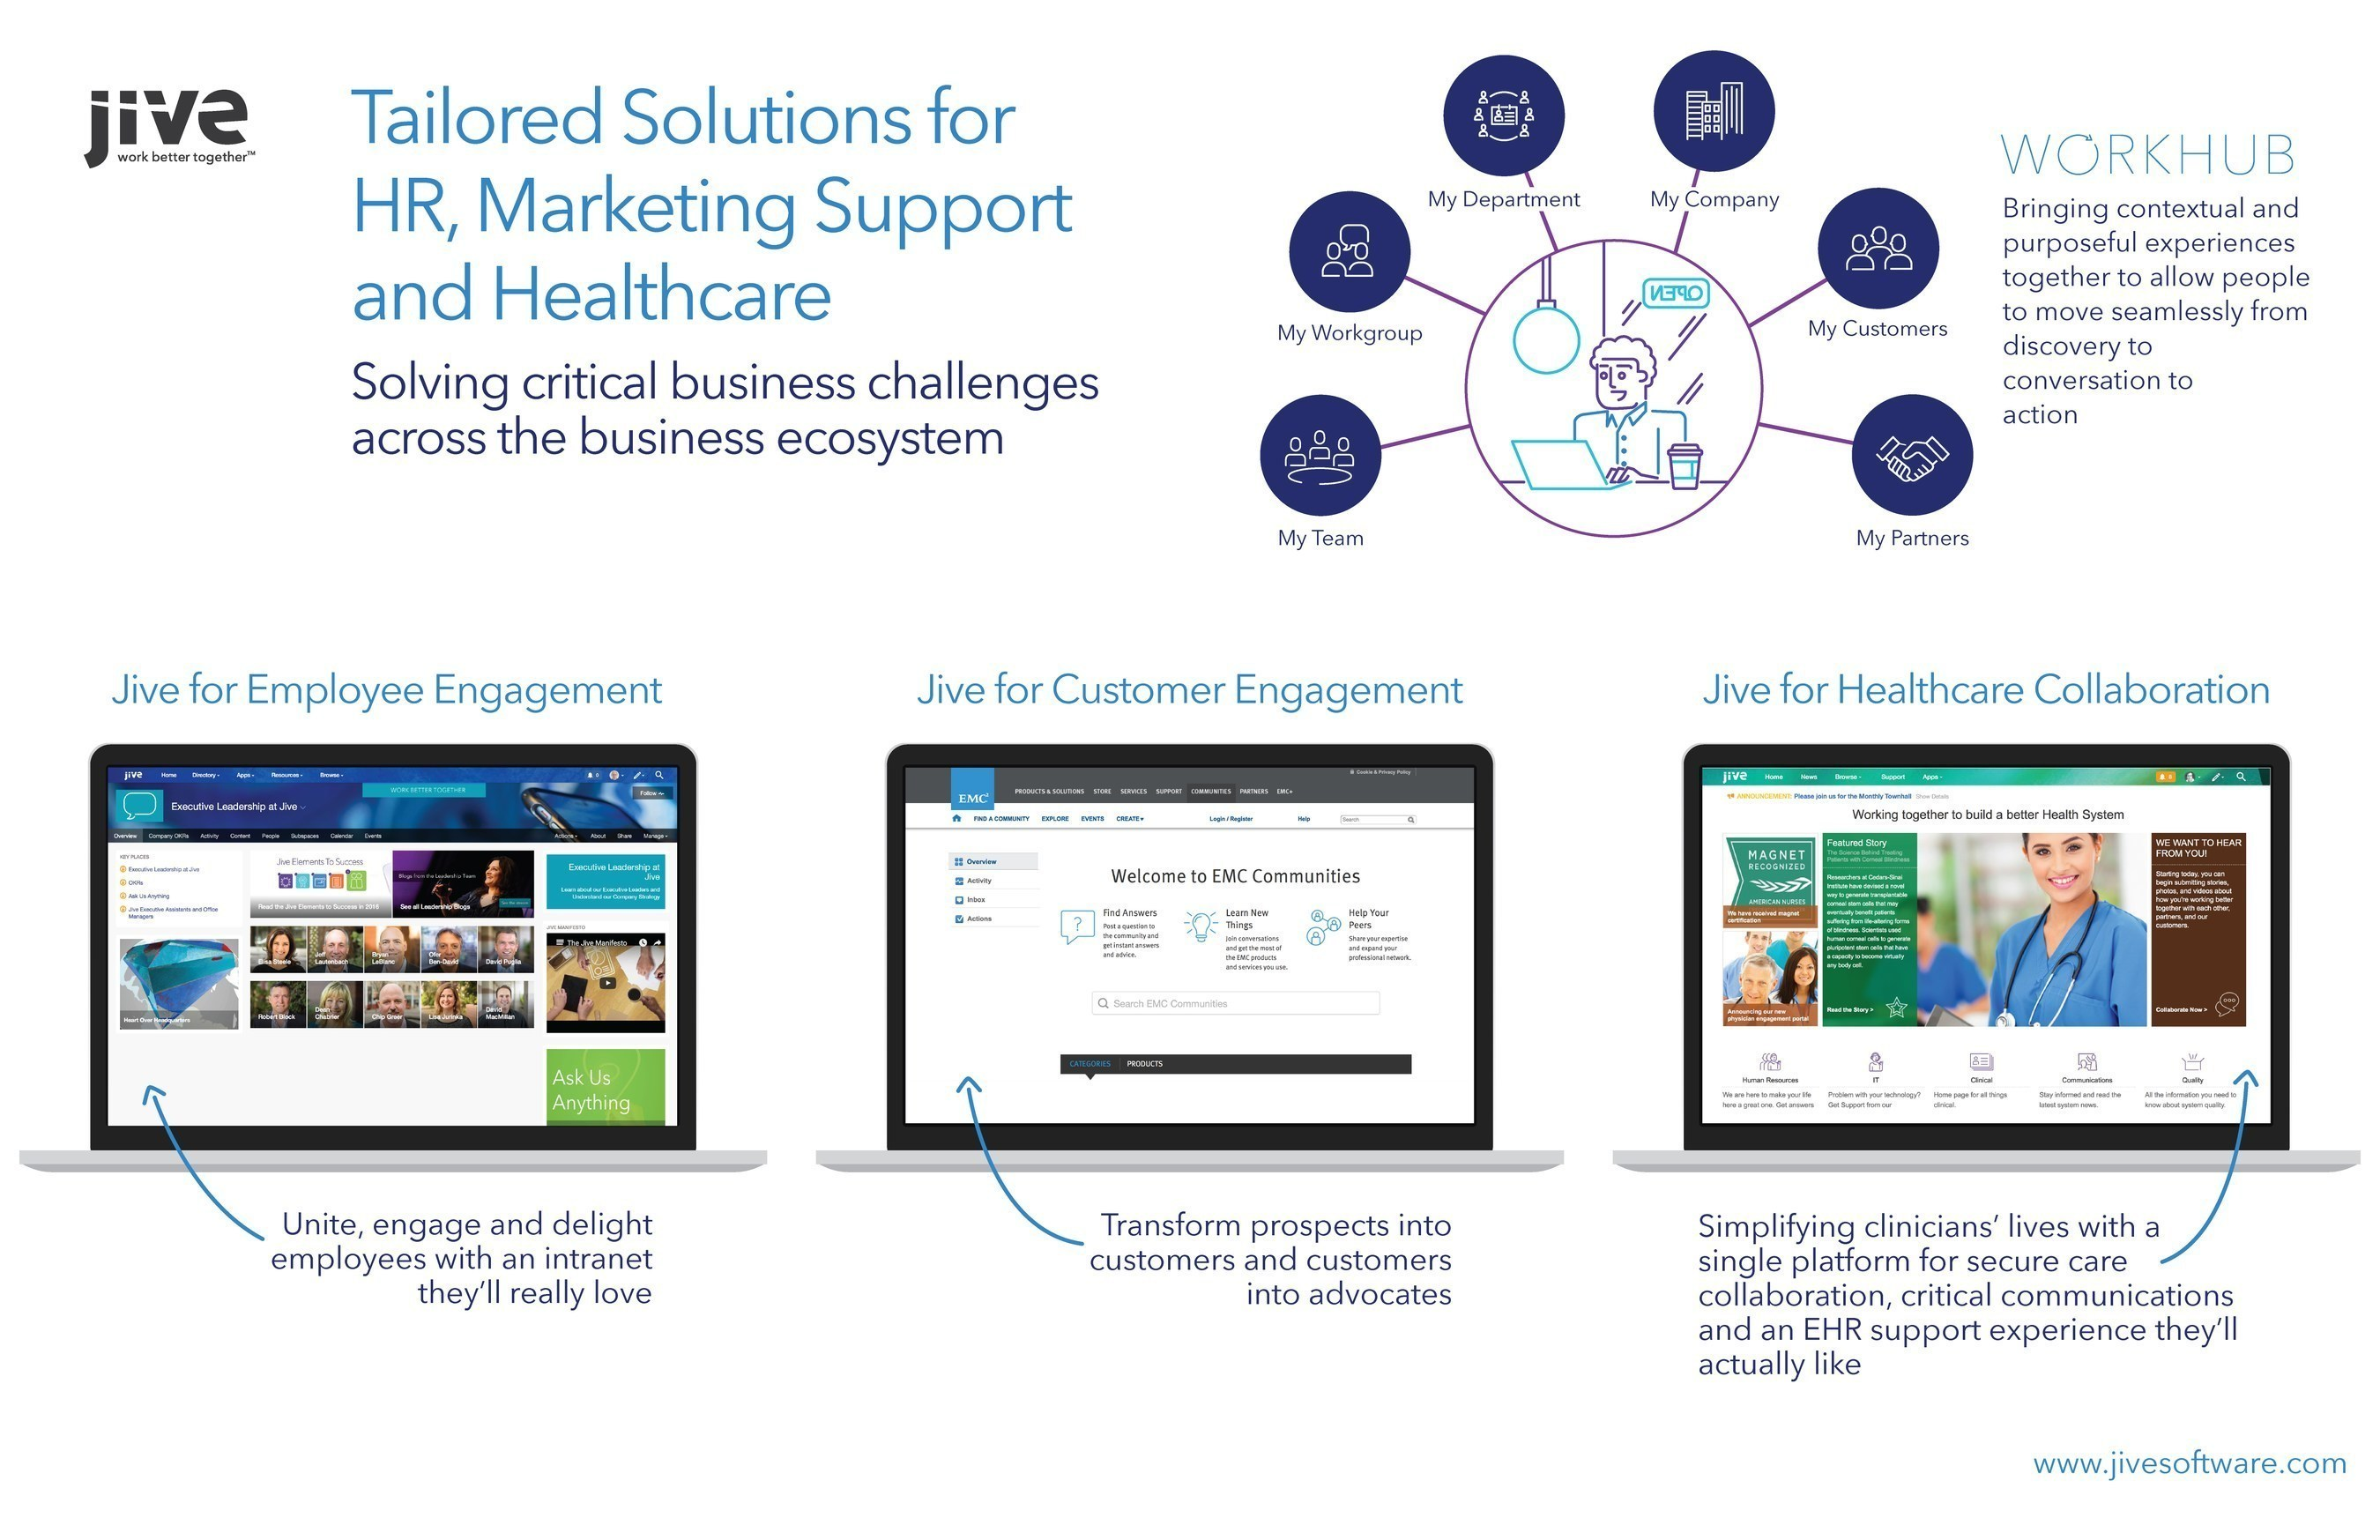 new packaged solutions for verticals and business units jive for healthcare collaboration jive for